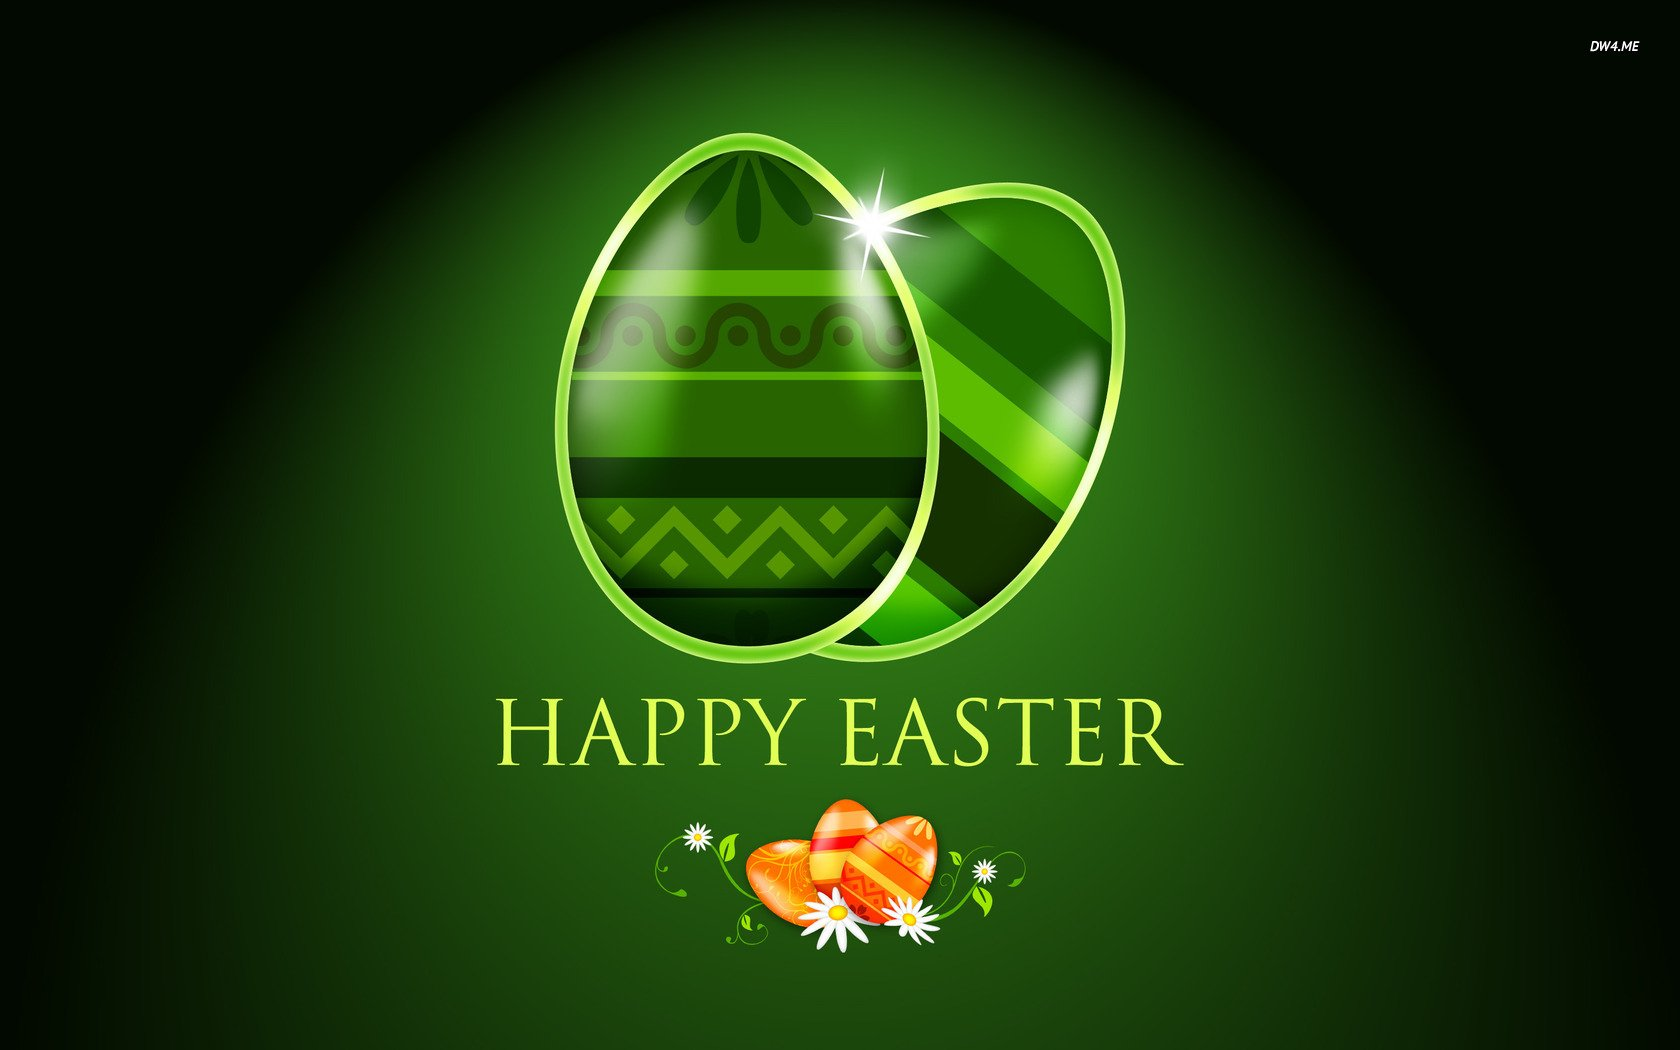 Happy Easter wallpaper   Holiday wallpapers   2223 1680x1050